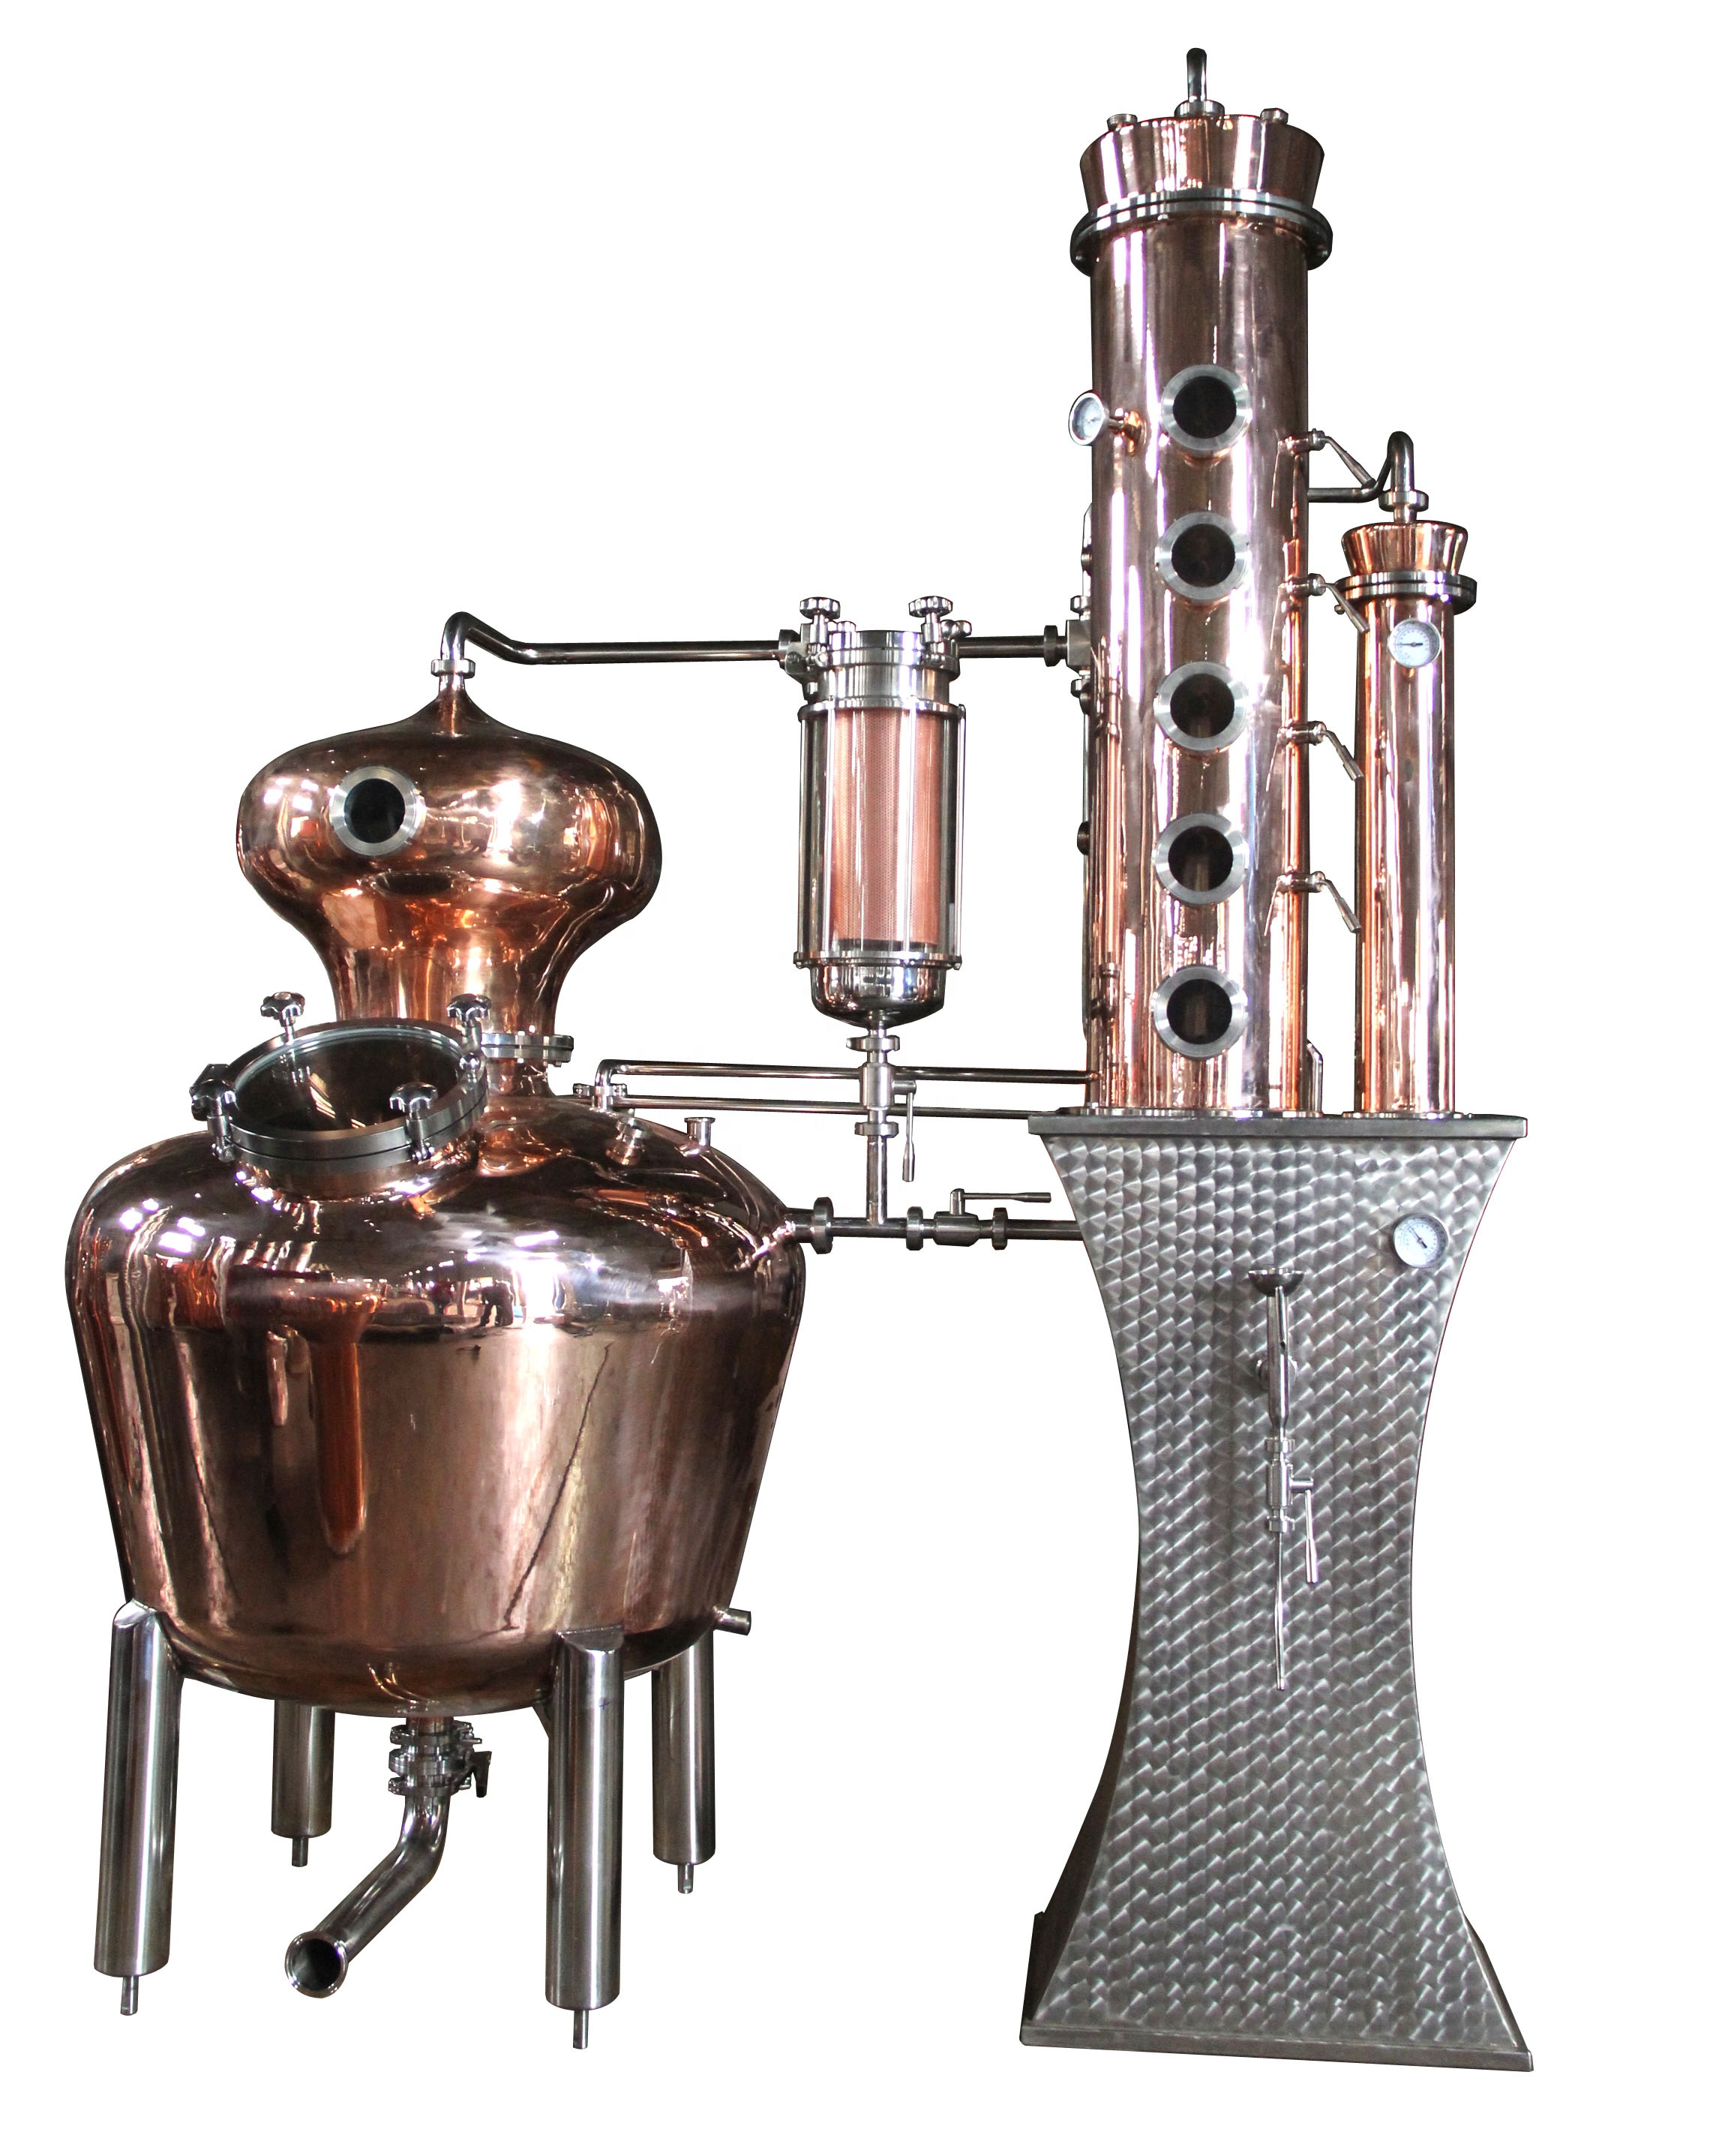 4 Or 6 Copper Plate Stainless Steel Moonshine Reflux Still For Sale - Buy  Reflux Still,Moonshine Still,Copper Still Product on Alibaba com